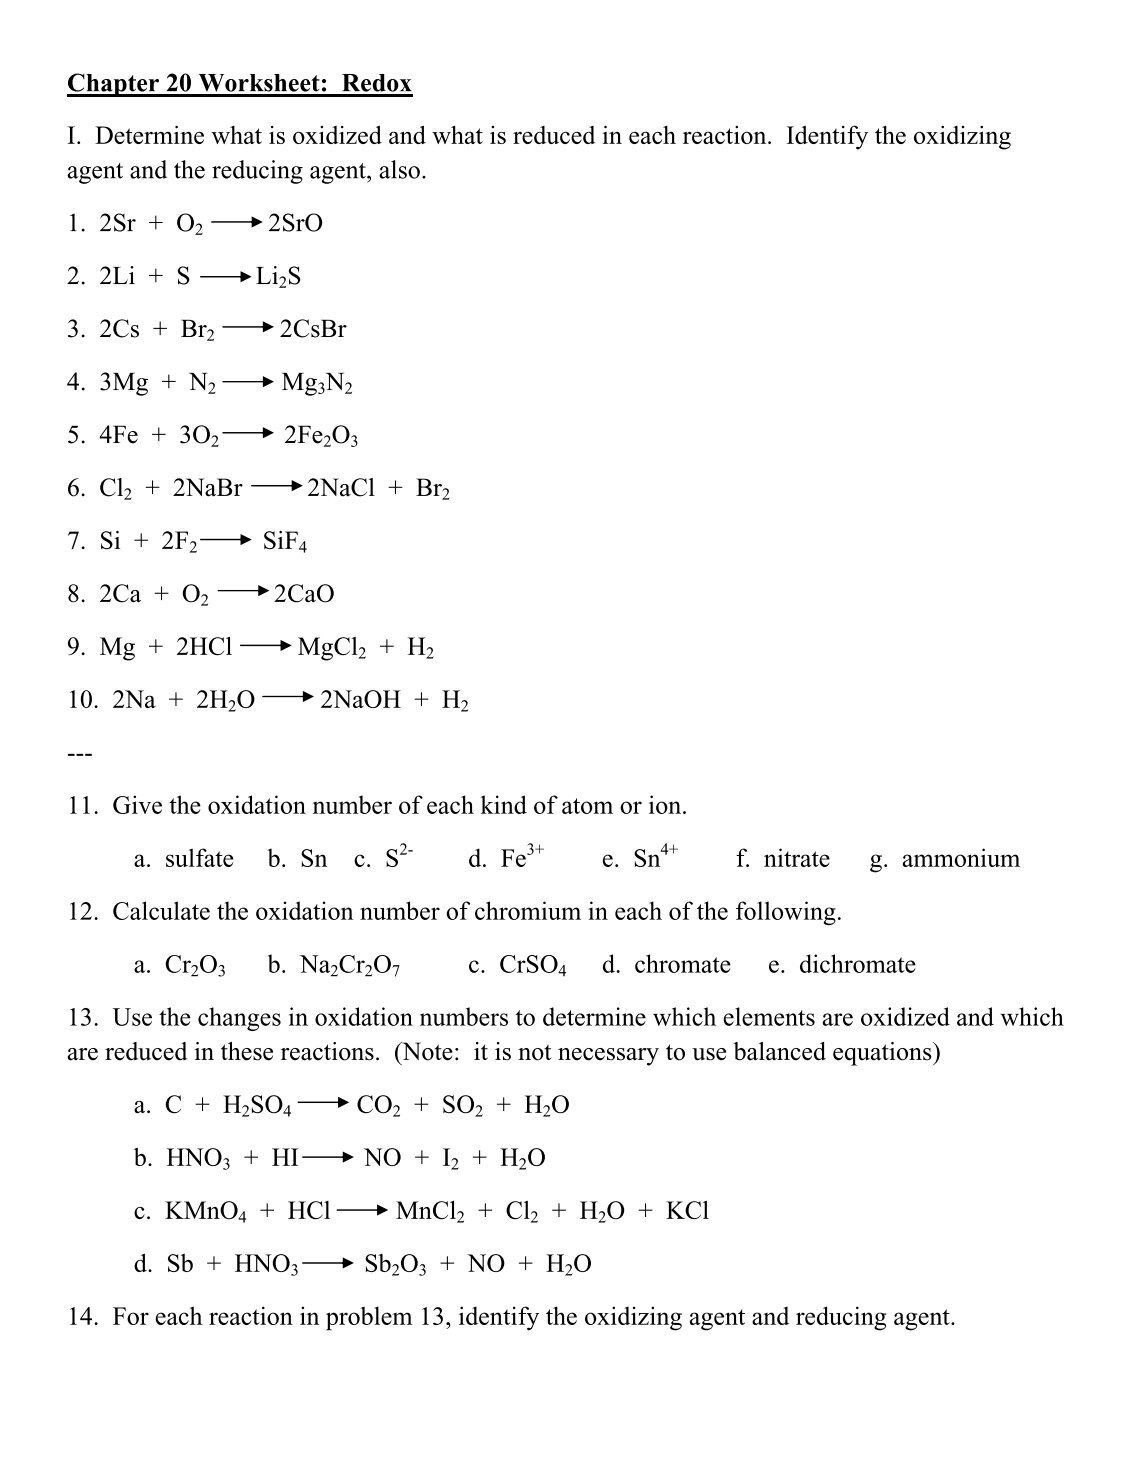 Worksheets Chapter 20 Worksheet Redox 1 free magazines from maheh z z